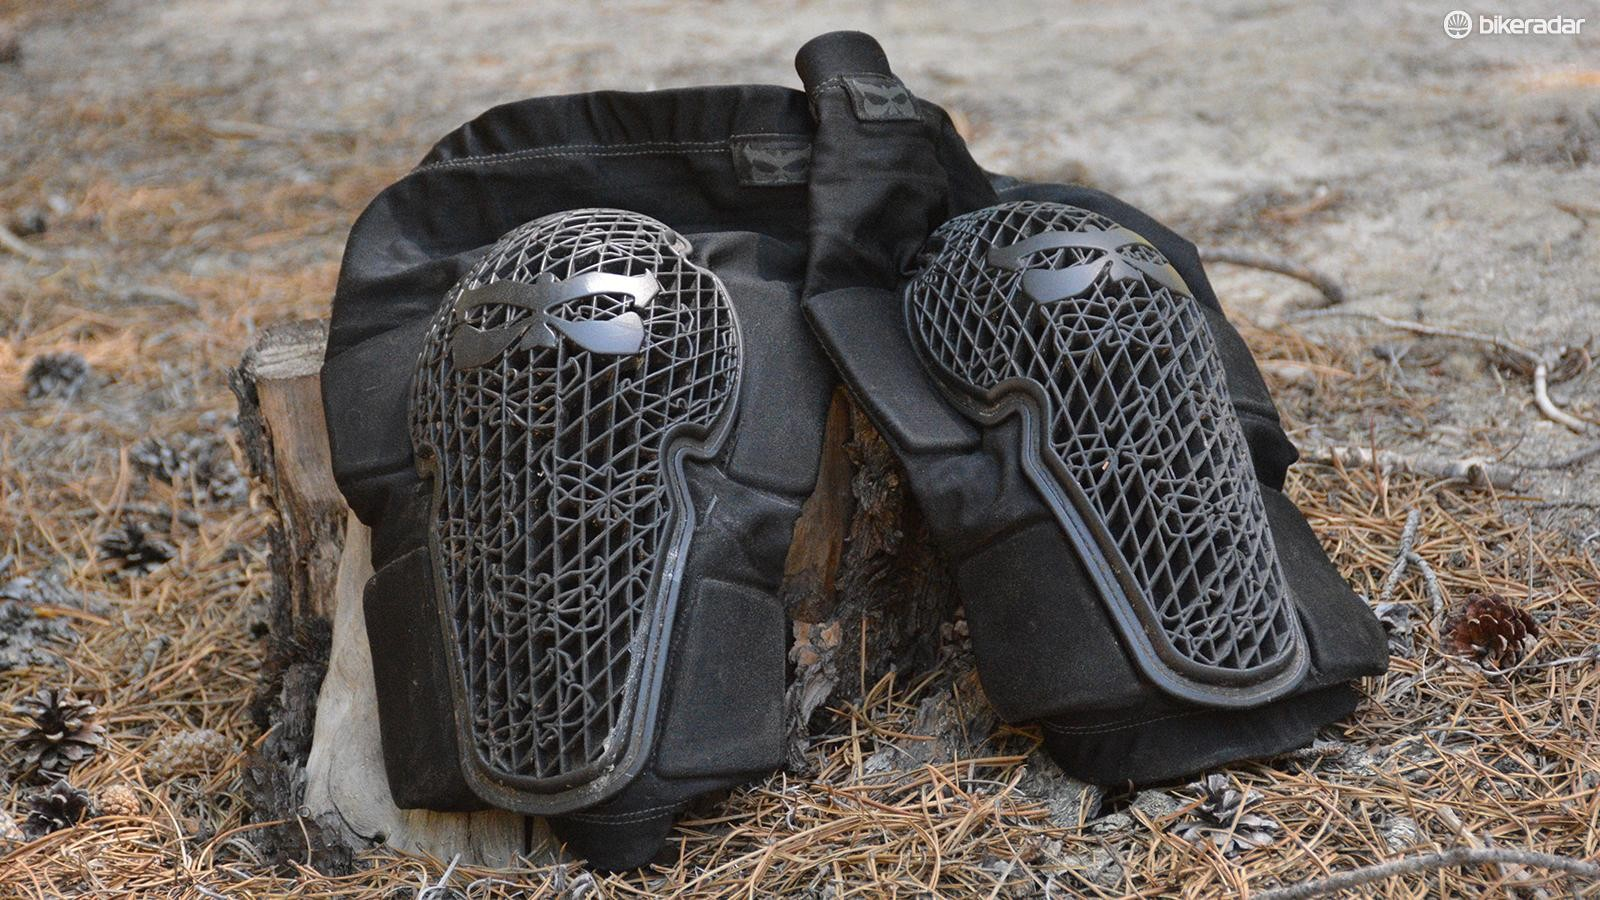 Kali's Strike knee pads have a material that hardens upon impact for the big hits